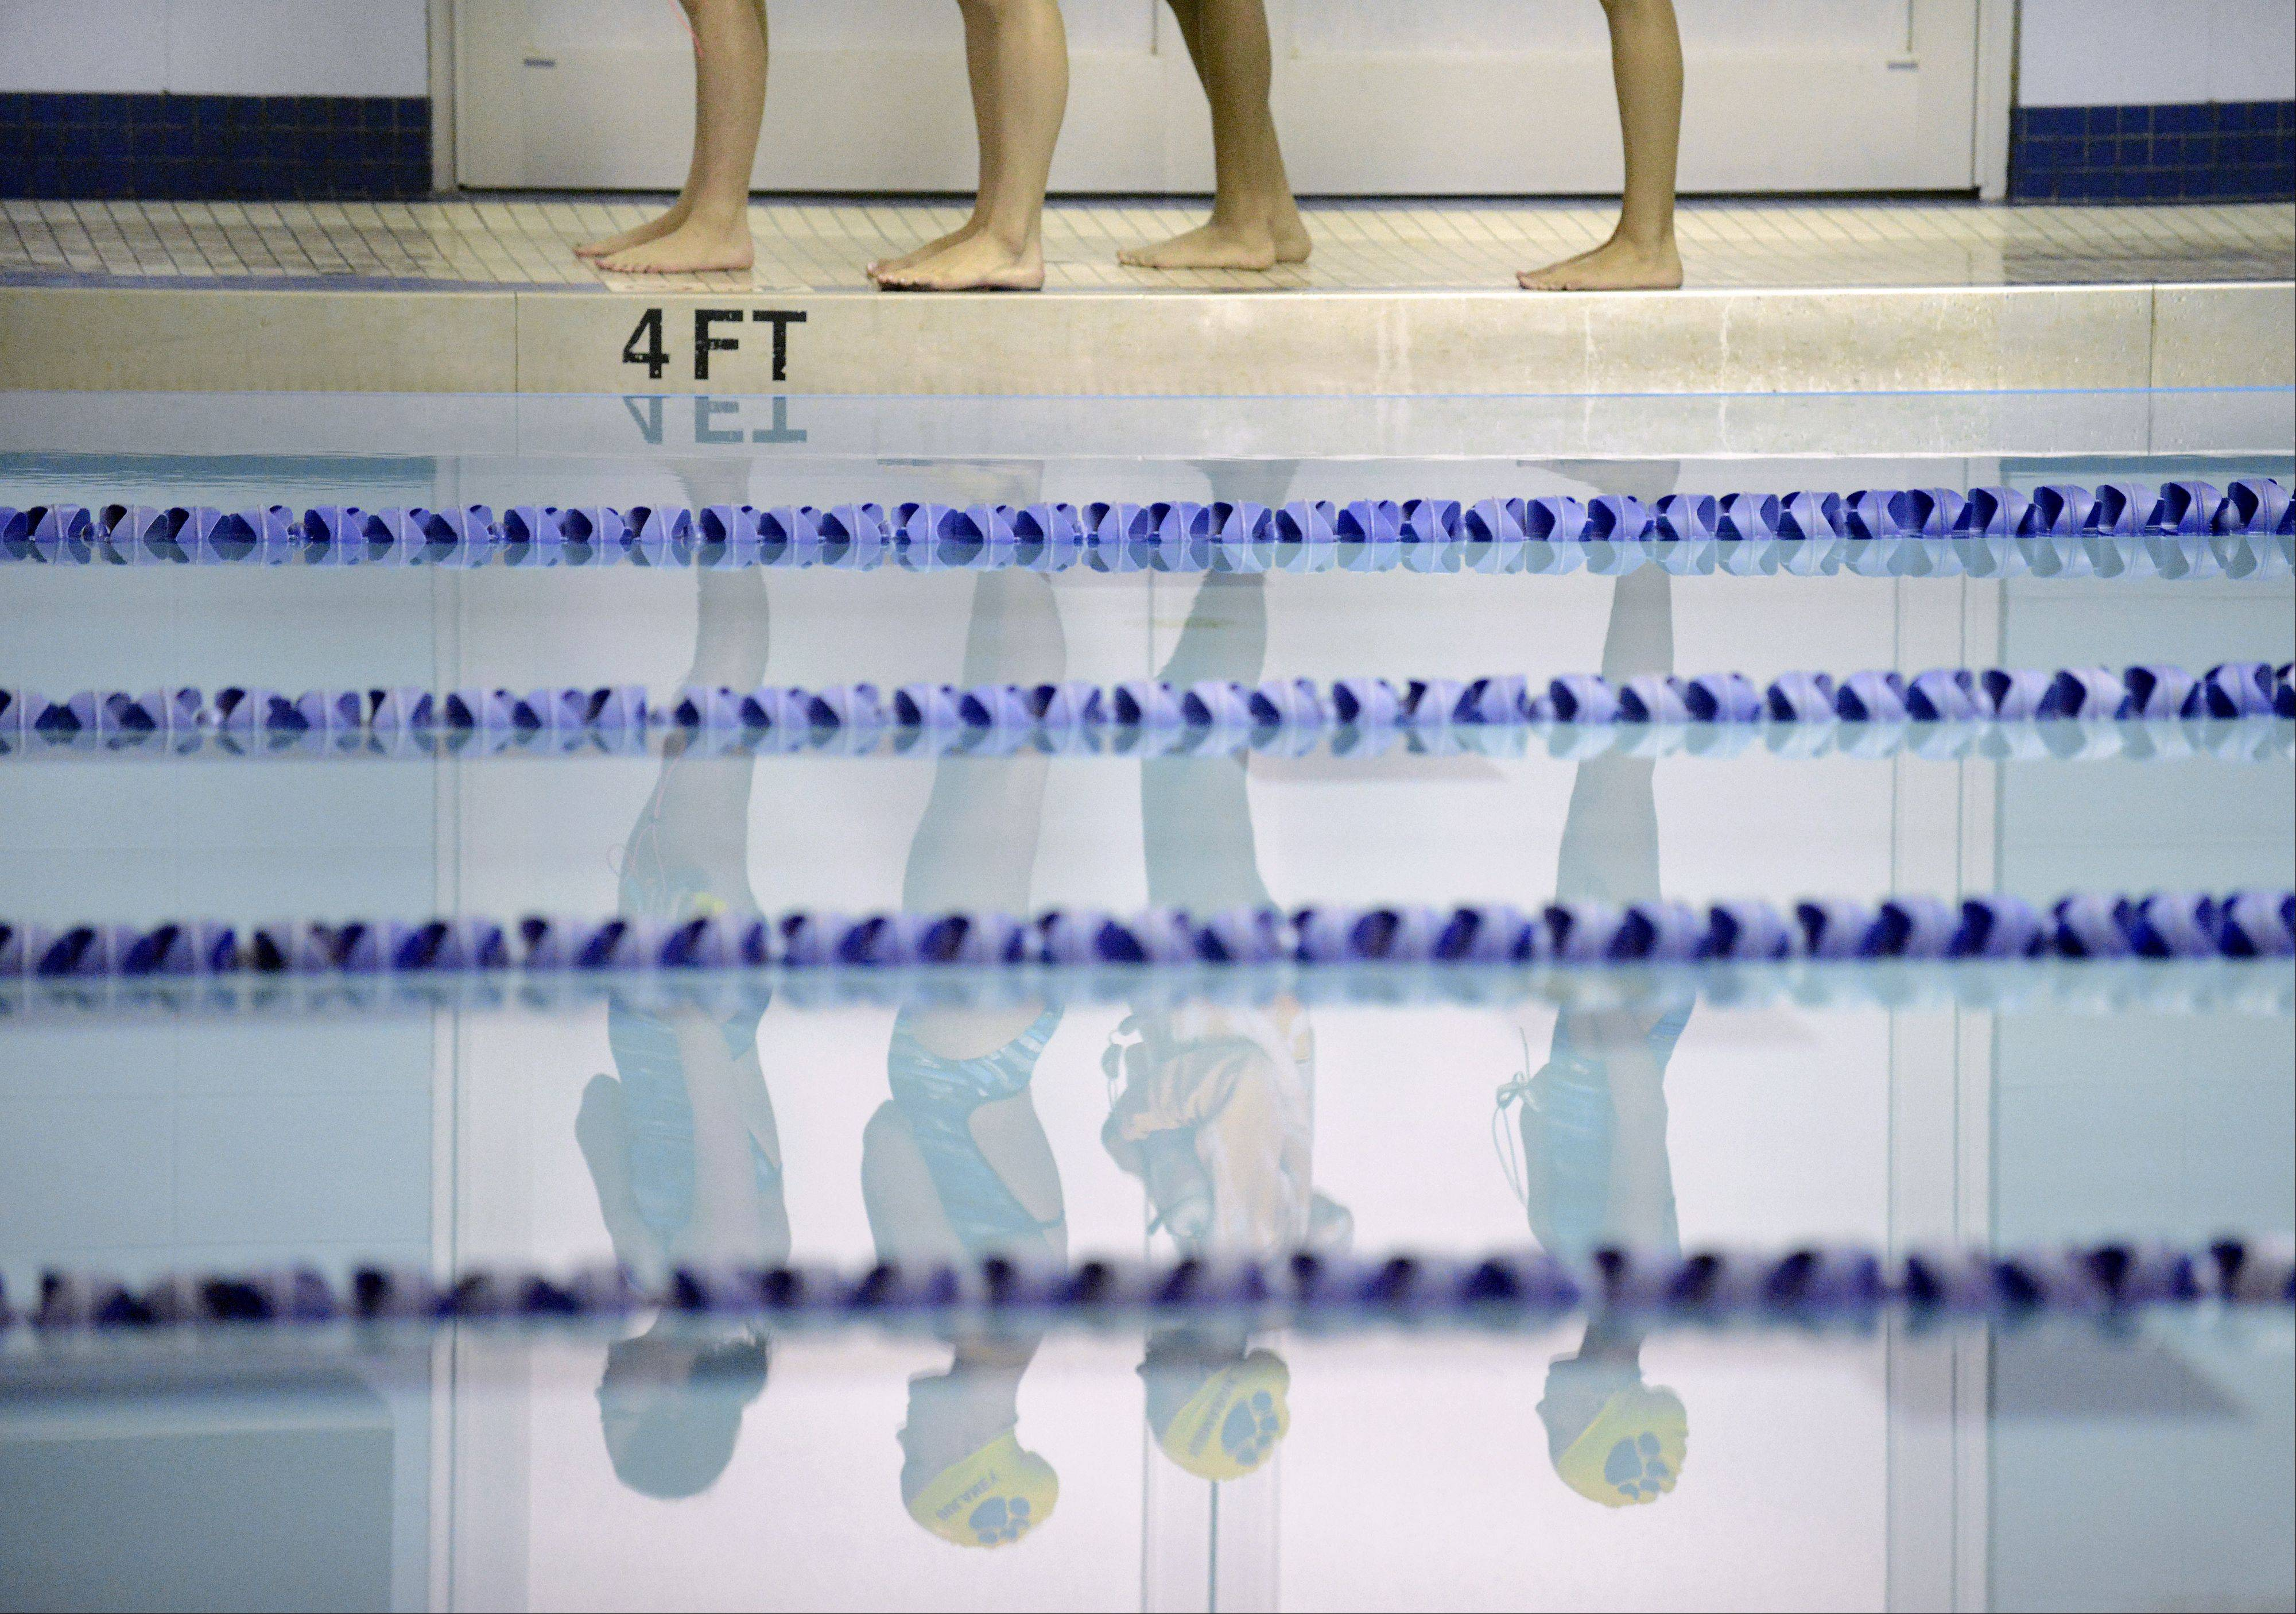 As I stood with my hand on my heart listening to the National Anthem play at a Rosary girls swimming invitational in September, the reflections of four swimmers in the still water caught my eye. Then I saw the 4FT sign on the edge of the pool, realized there were four sets of feet there and I couldn't resist taking a photo. The com